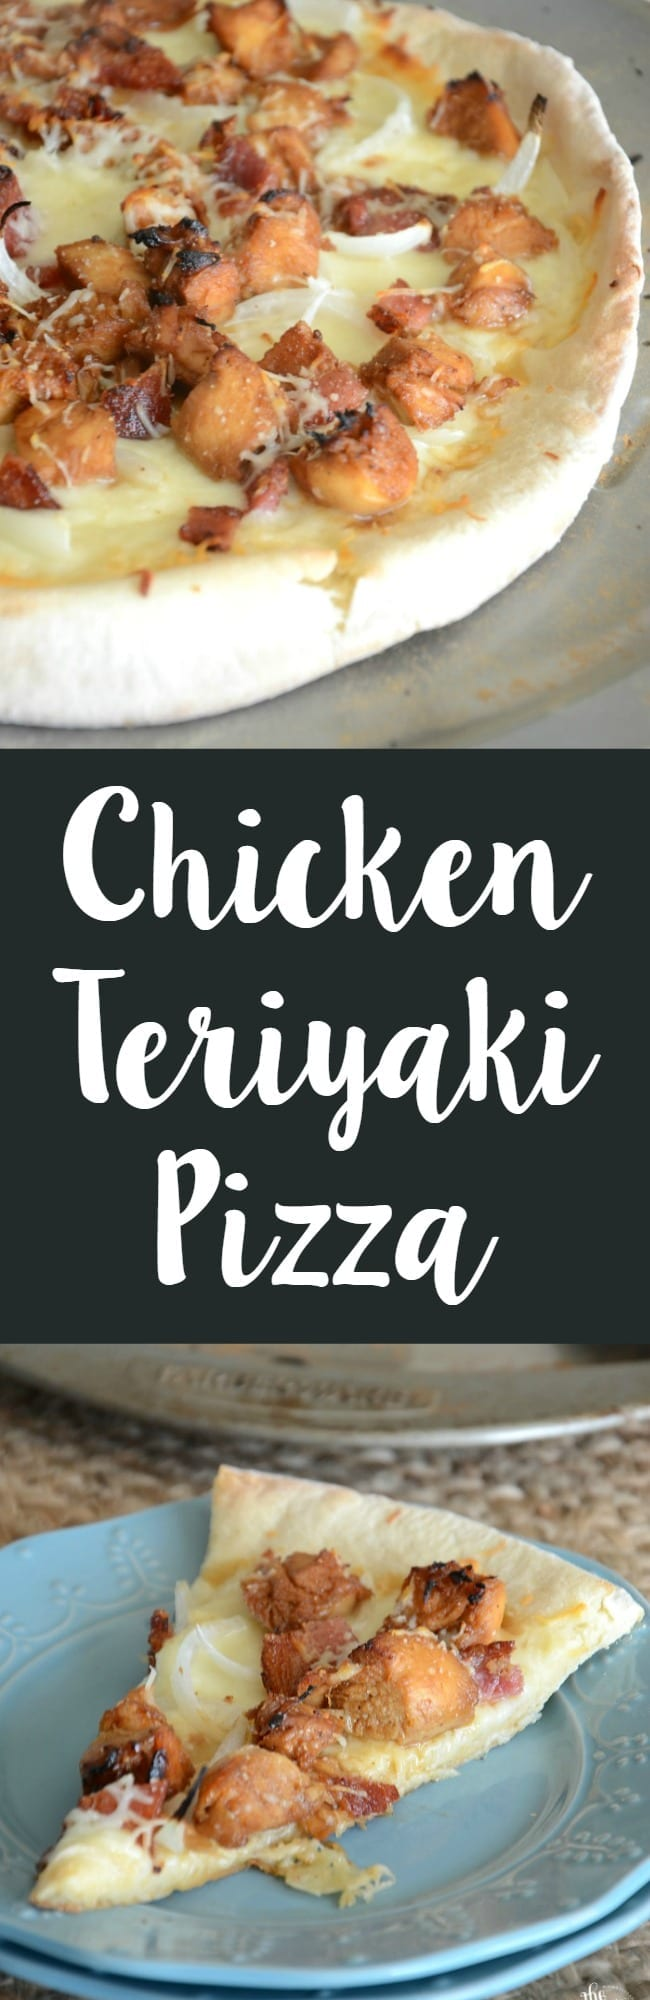 Chicken teriyaki pizza!  Make this easy weeknight meal in no time!